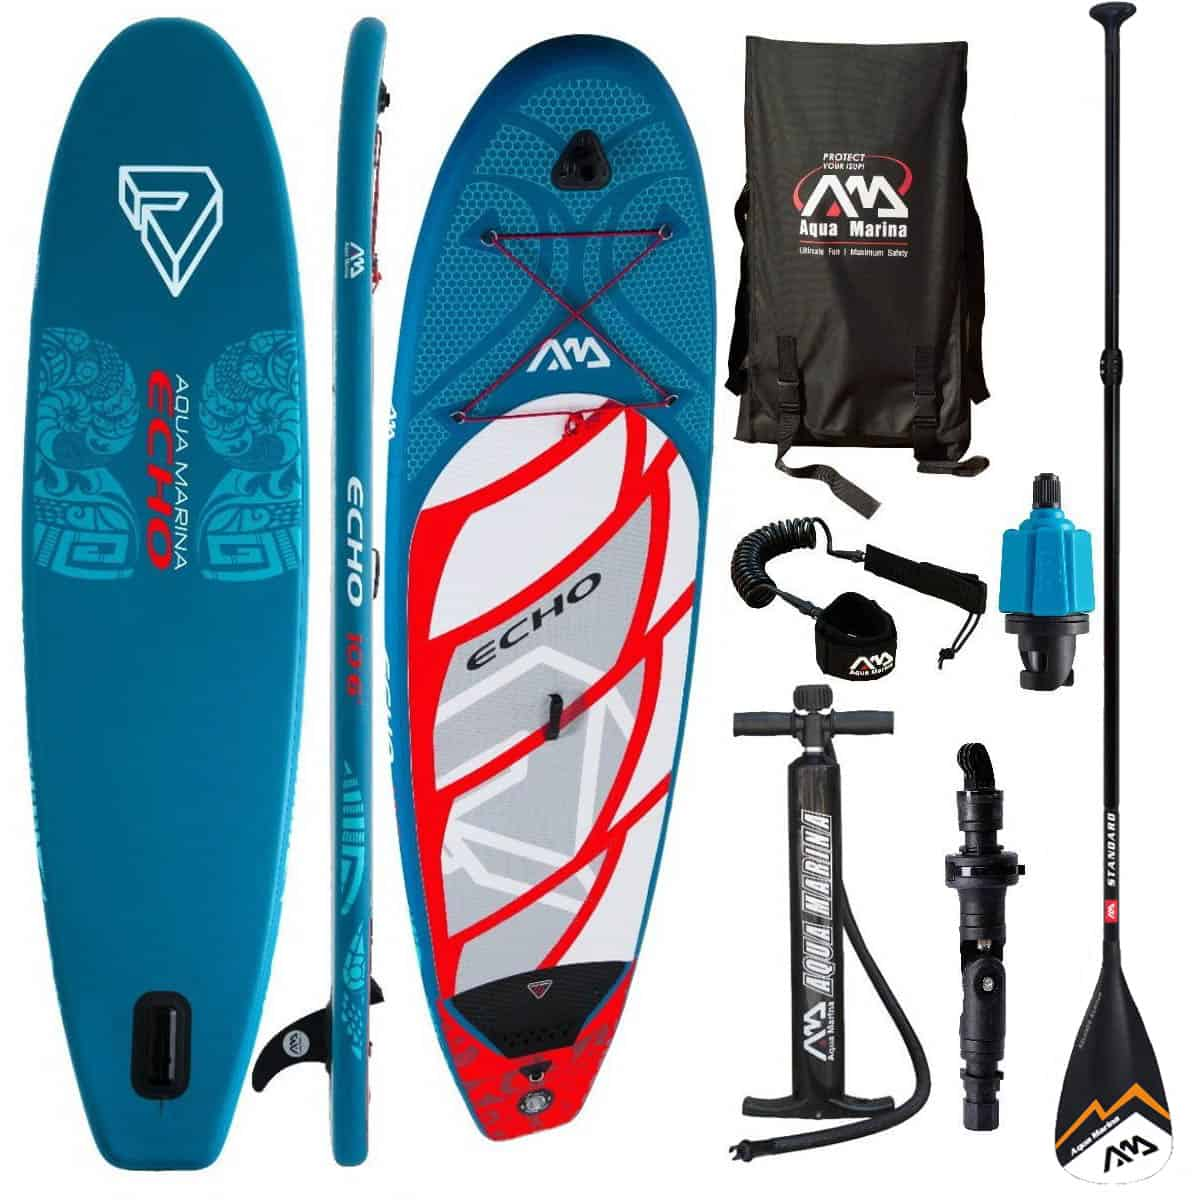 Echo_10'6x32_Aqua_Marina_Set_StandardPaddle_CoilLeash